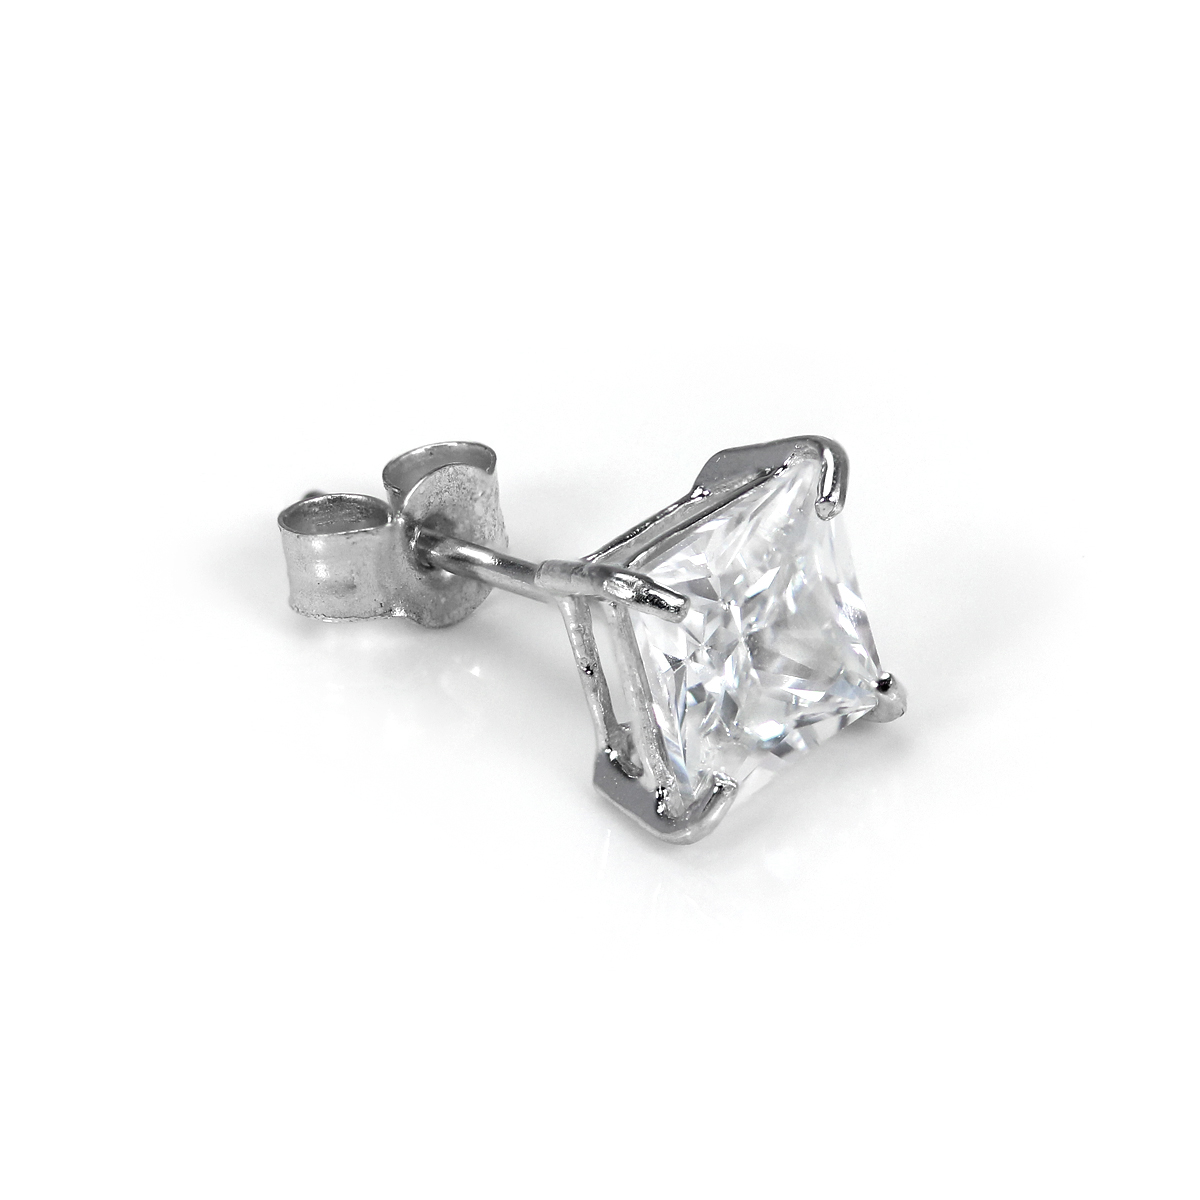 85a37ecfc3f5e Details about 9ct White Gold Men's 5mm Square Crystal Ear Stud Earring /  Studs / Mens / CZ